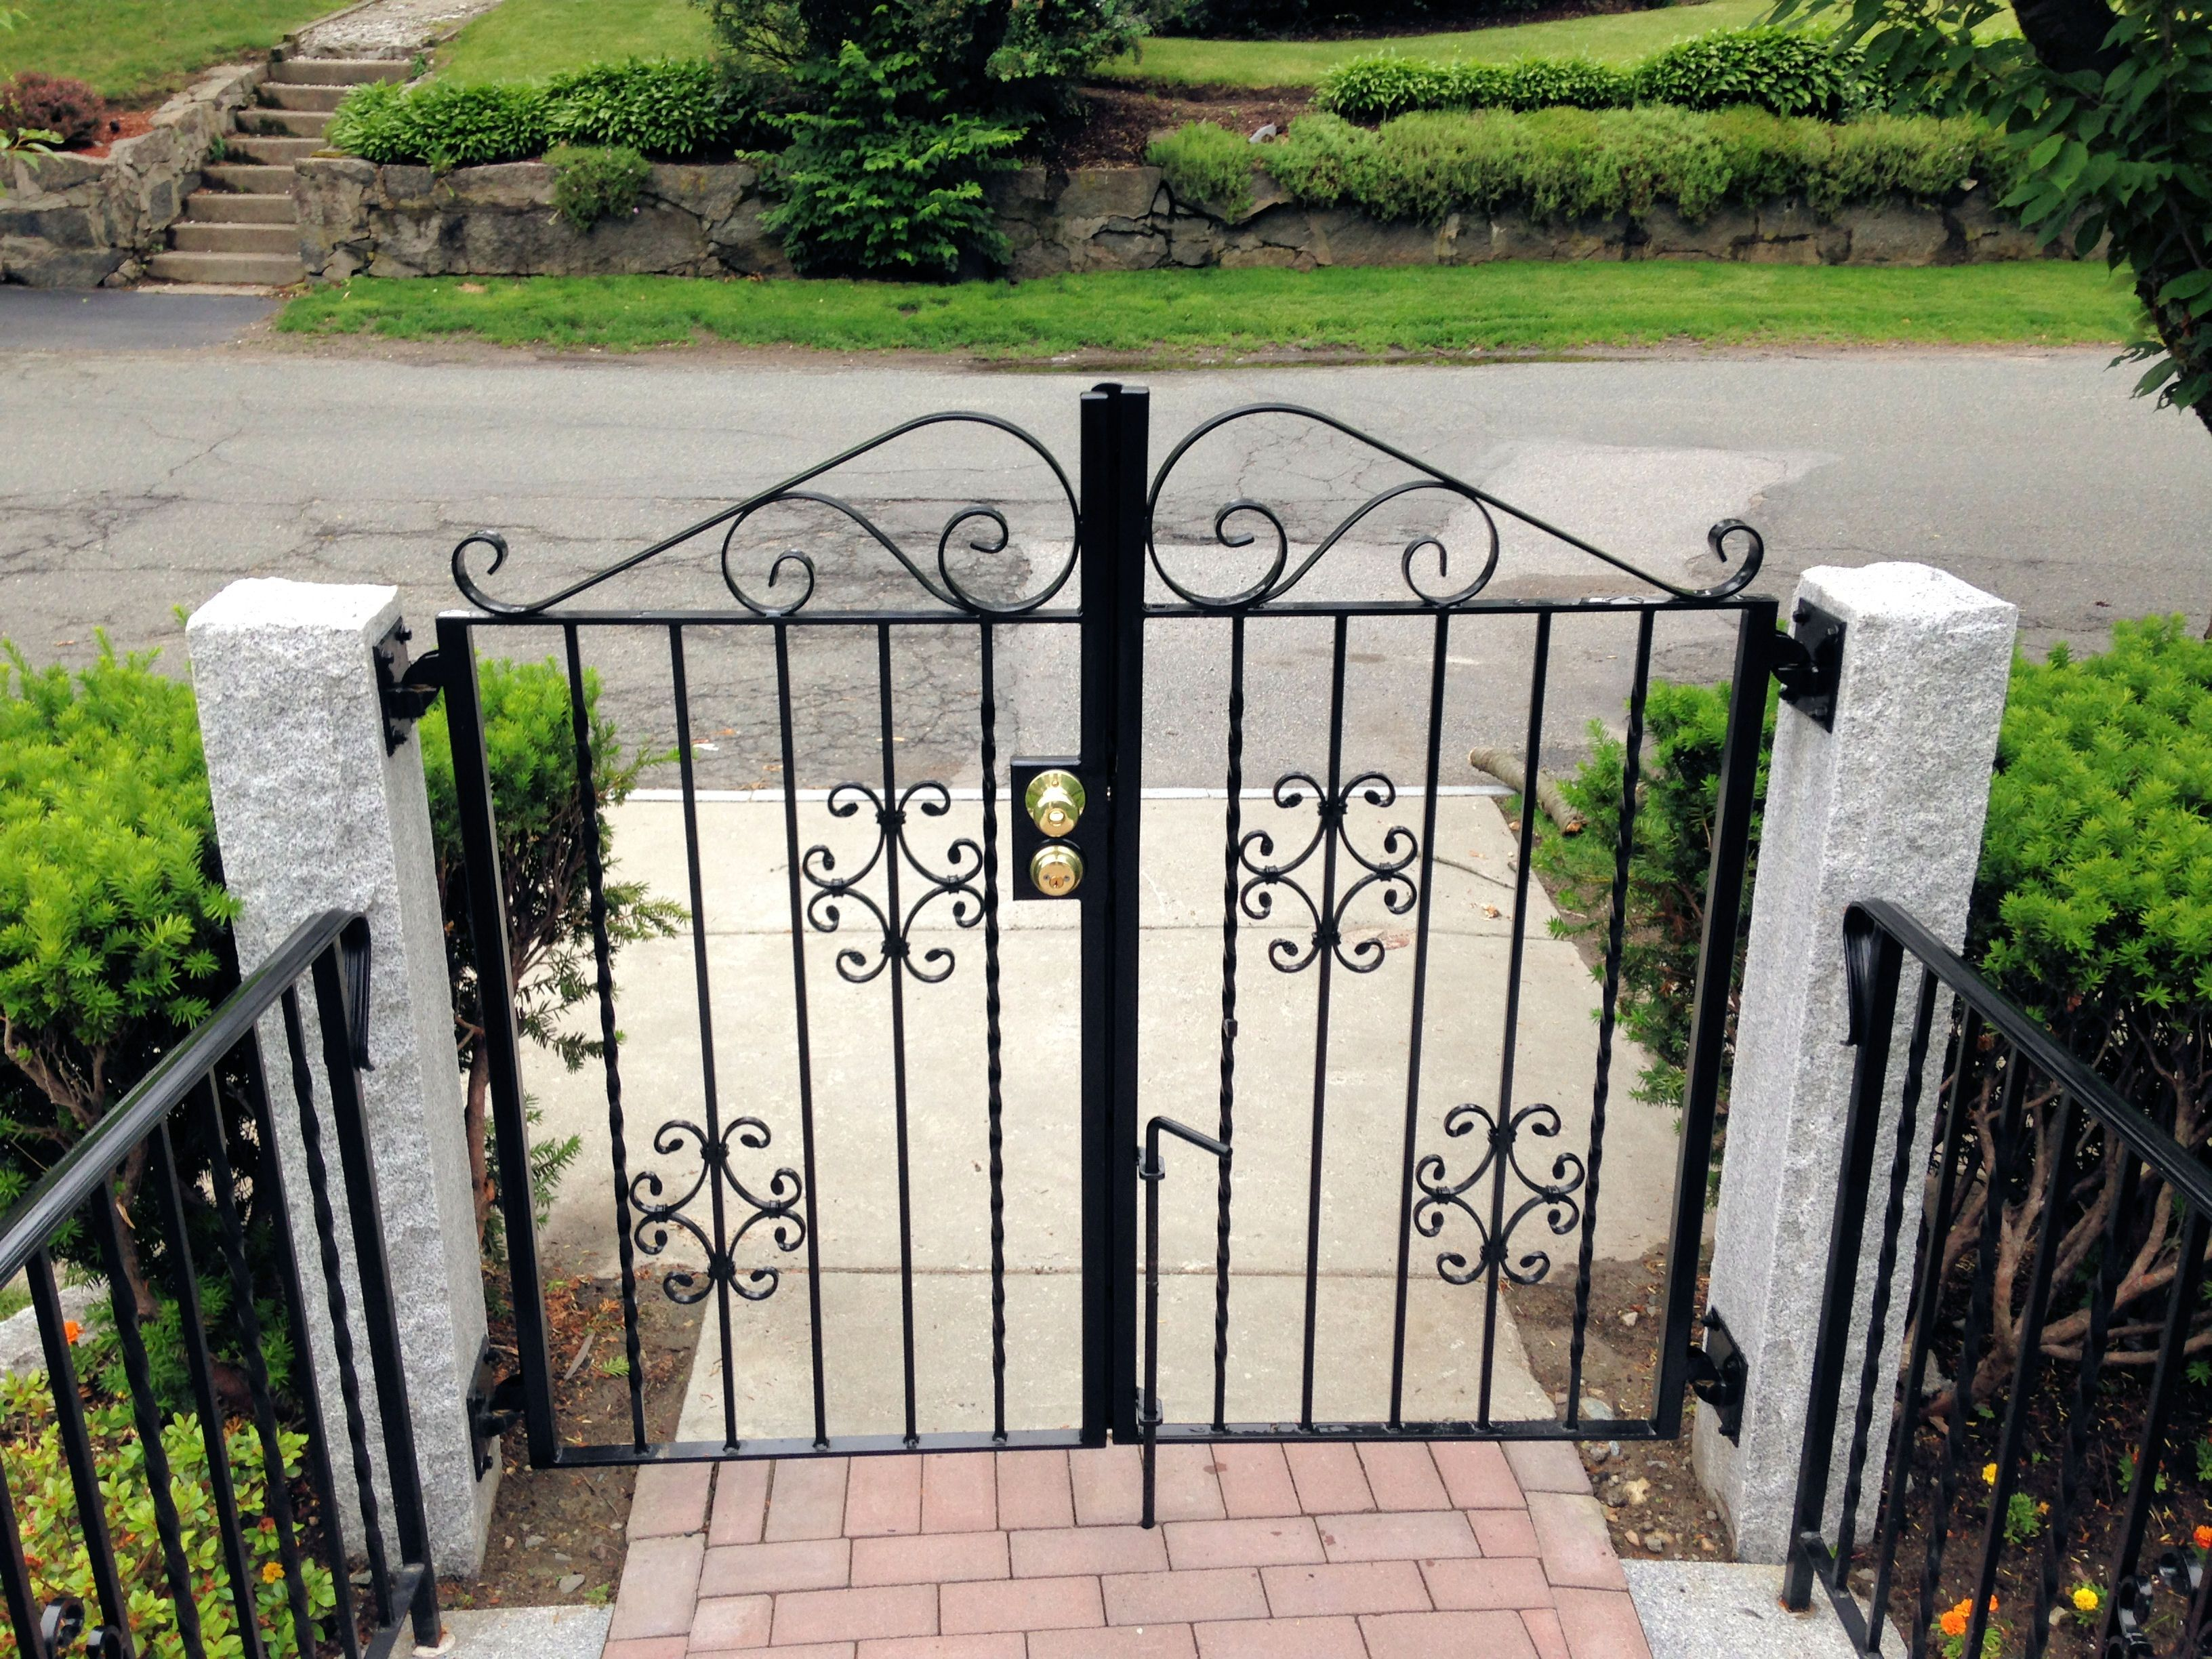 Bolduc Colonial Red Pavers 12 Wide X 2 Thick Imperial Granite Treads 6 X6 X7 Granite Posts Gates And Raili Gates And Railings Front Door Porch Front Door